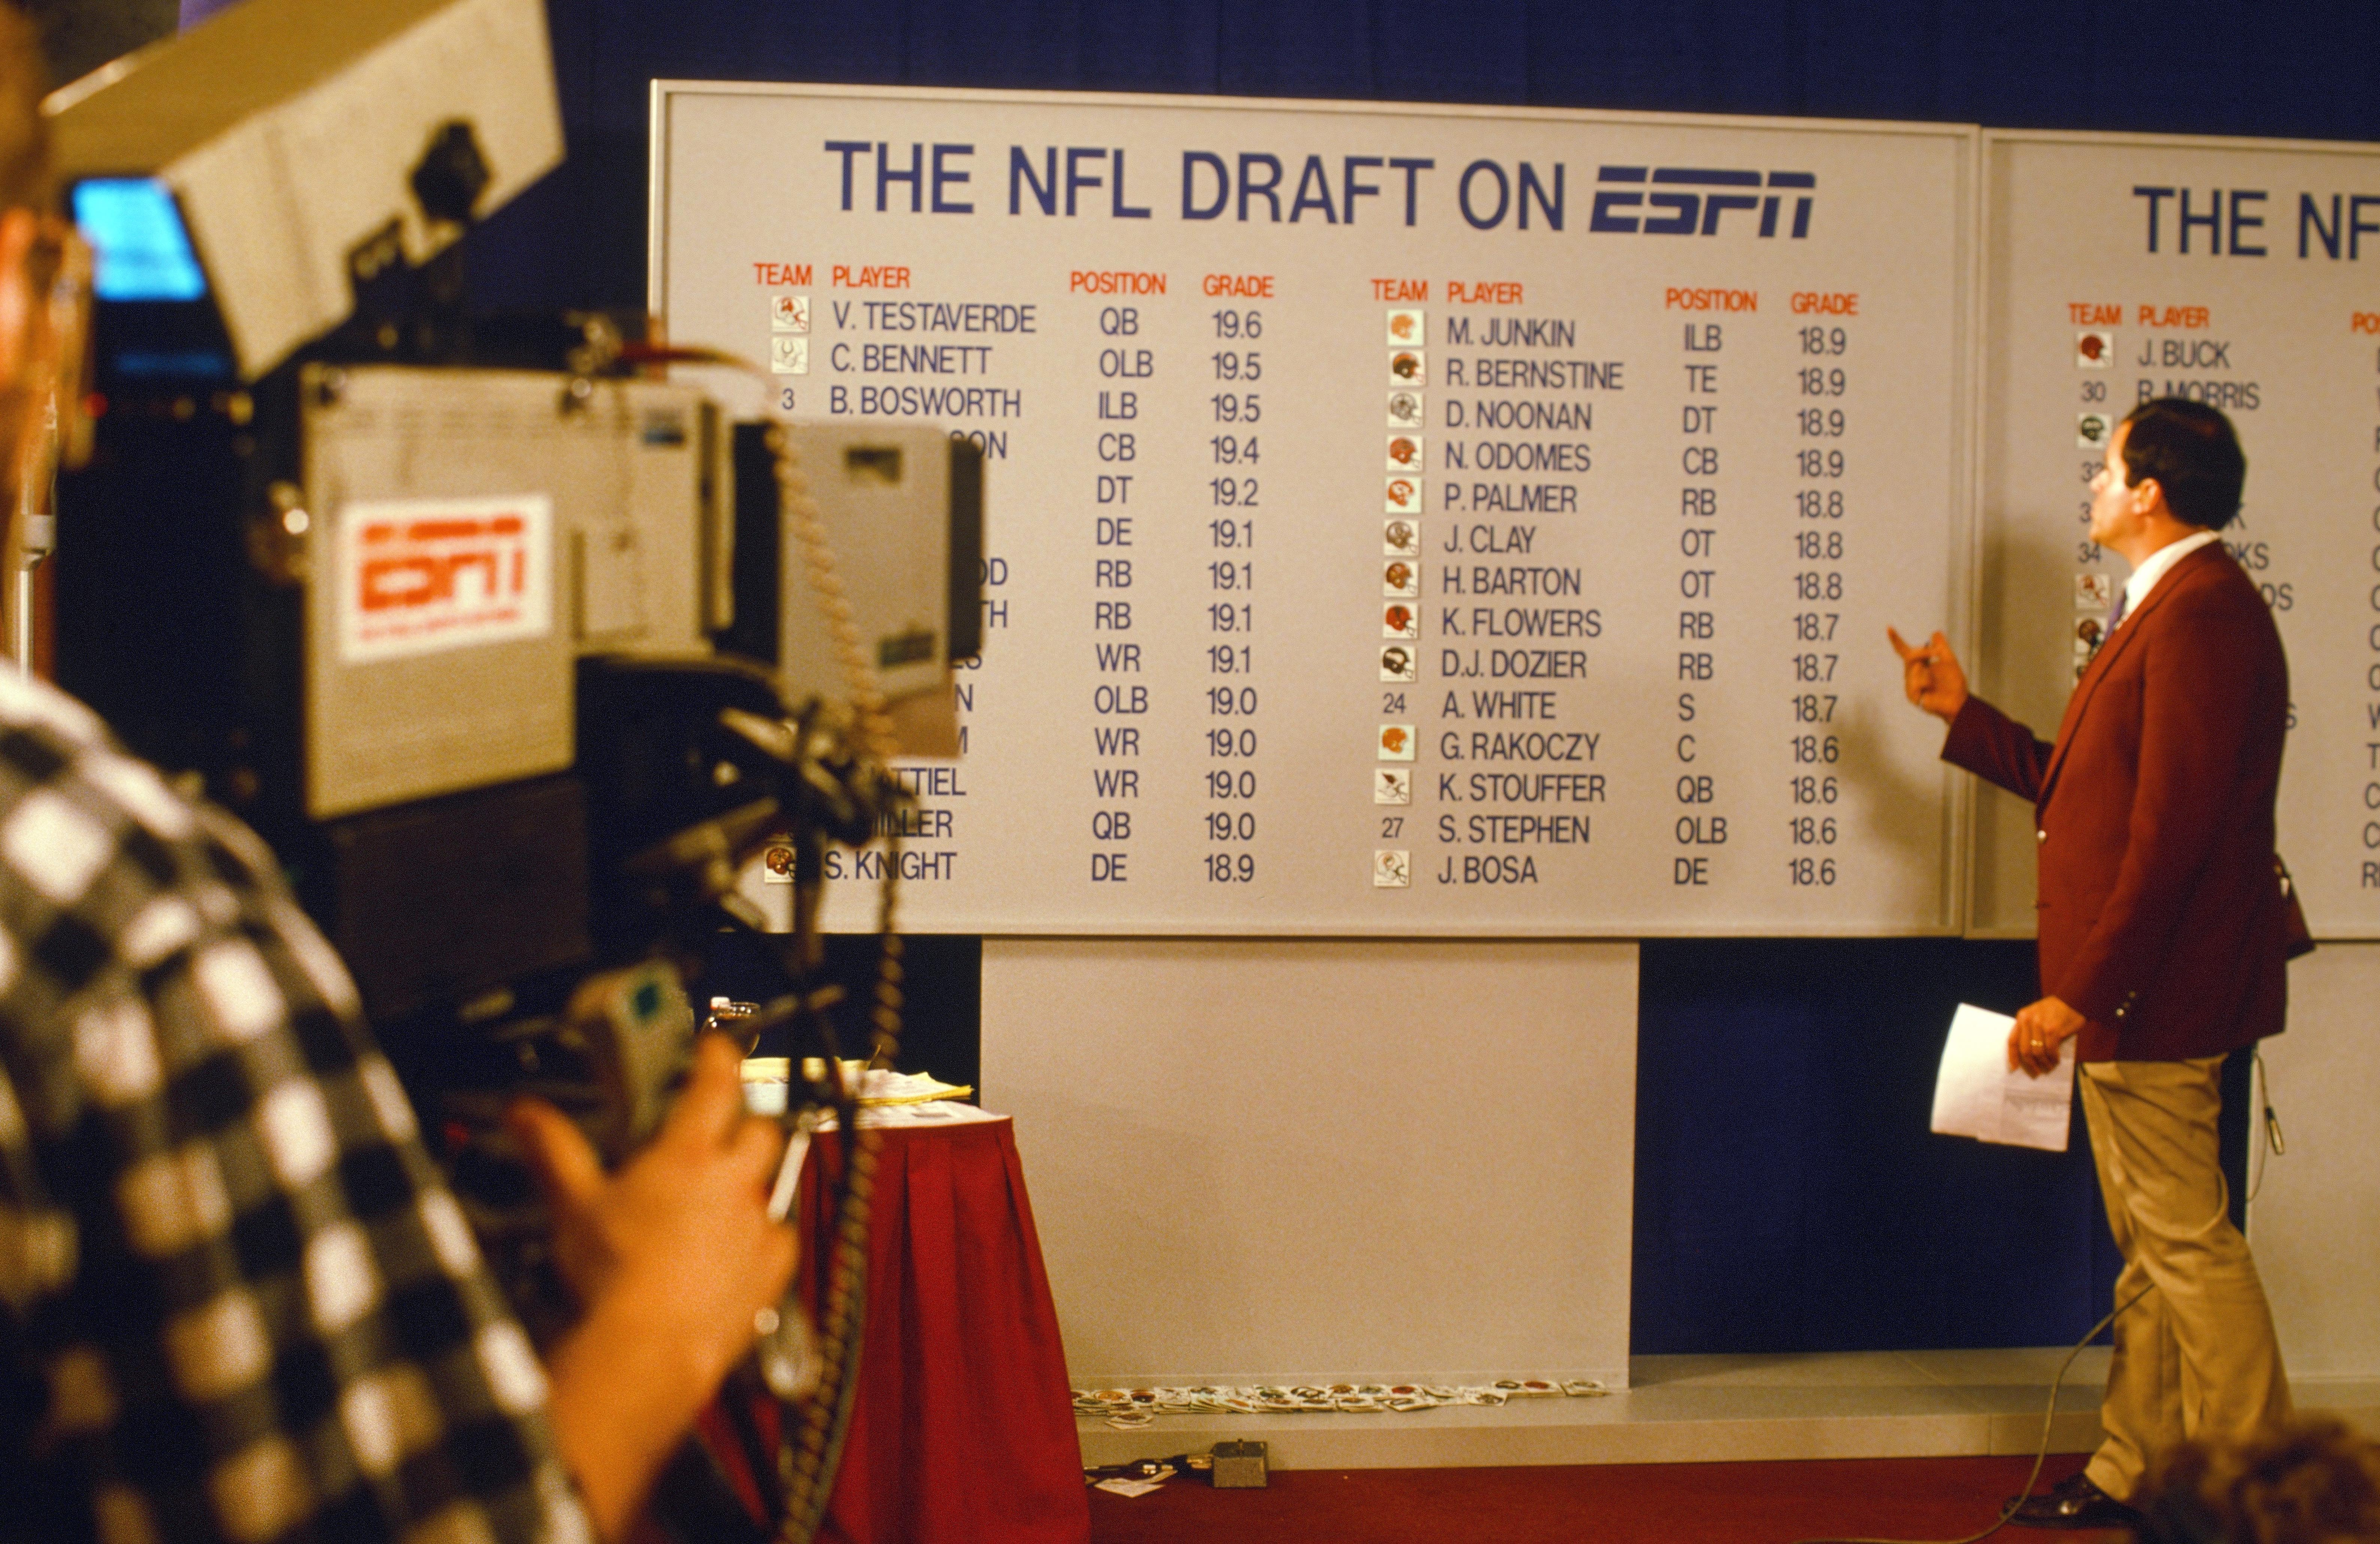 ESPN sports analyst Chris Berman looks at the draft board while on camera during the 1987 NFL Draft on April 28, 1987 in New York. (Paul Spinelli via AP)